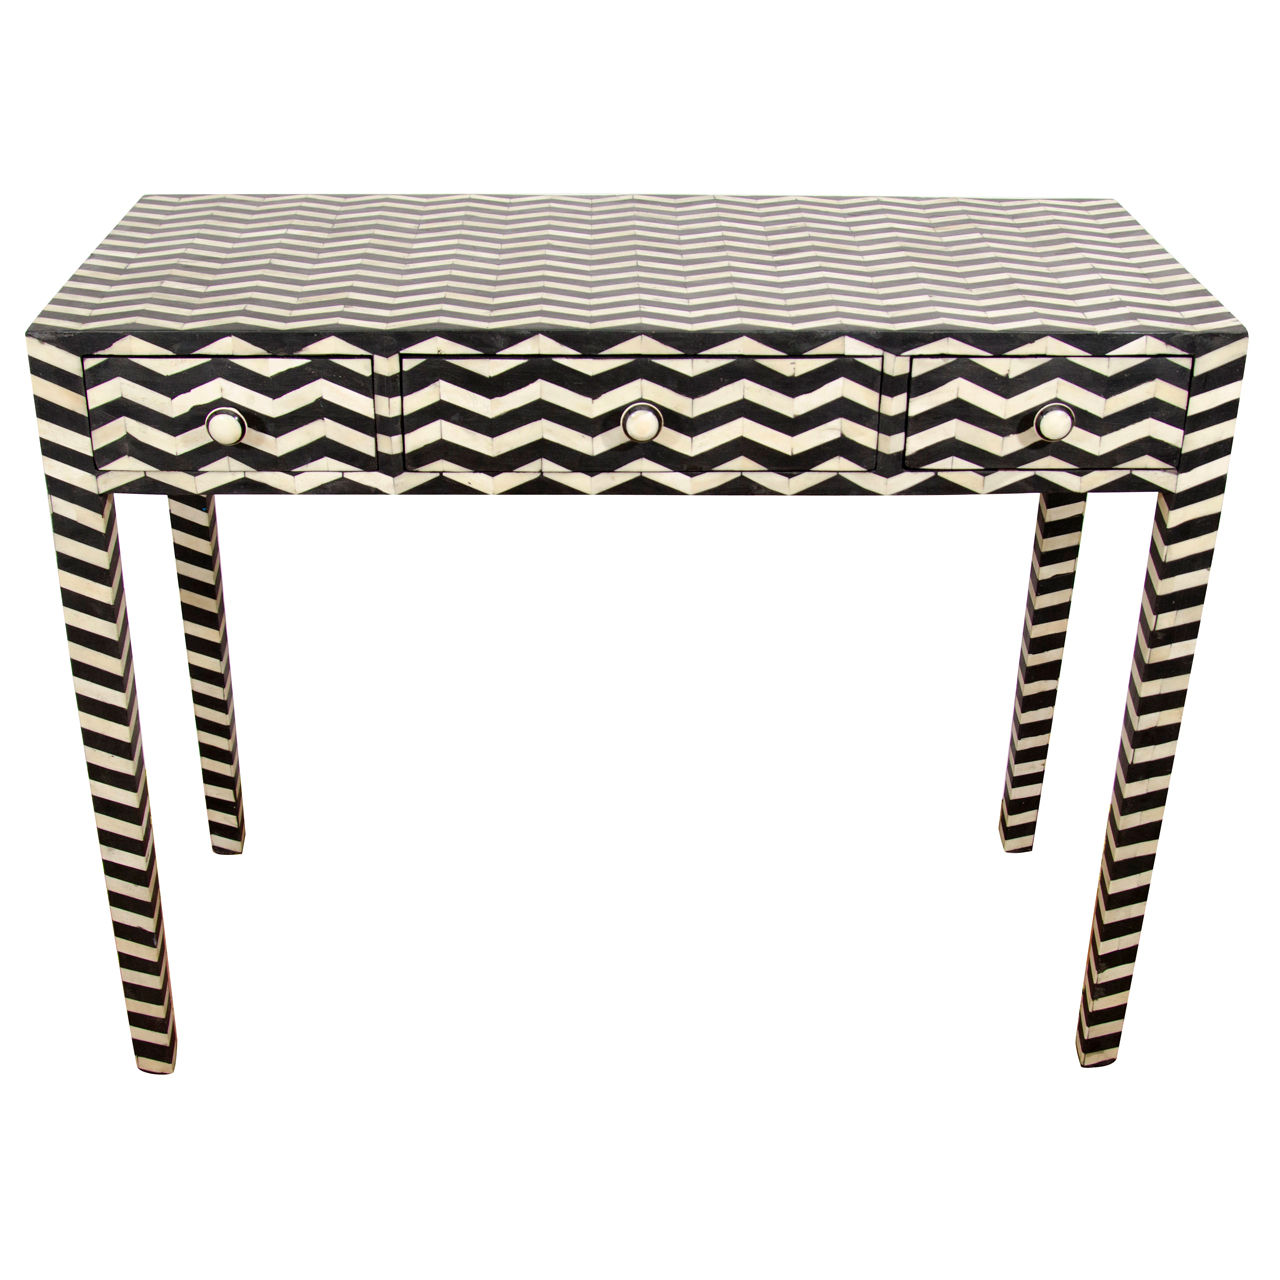 Black And White Bone Inlay Side Table | Furniture Design | Black For Black And White Inlay Console Tables (View 2 of 20)